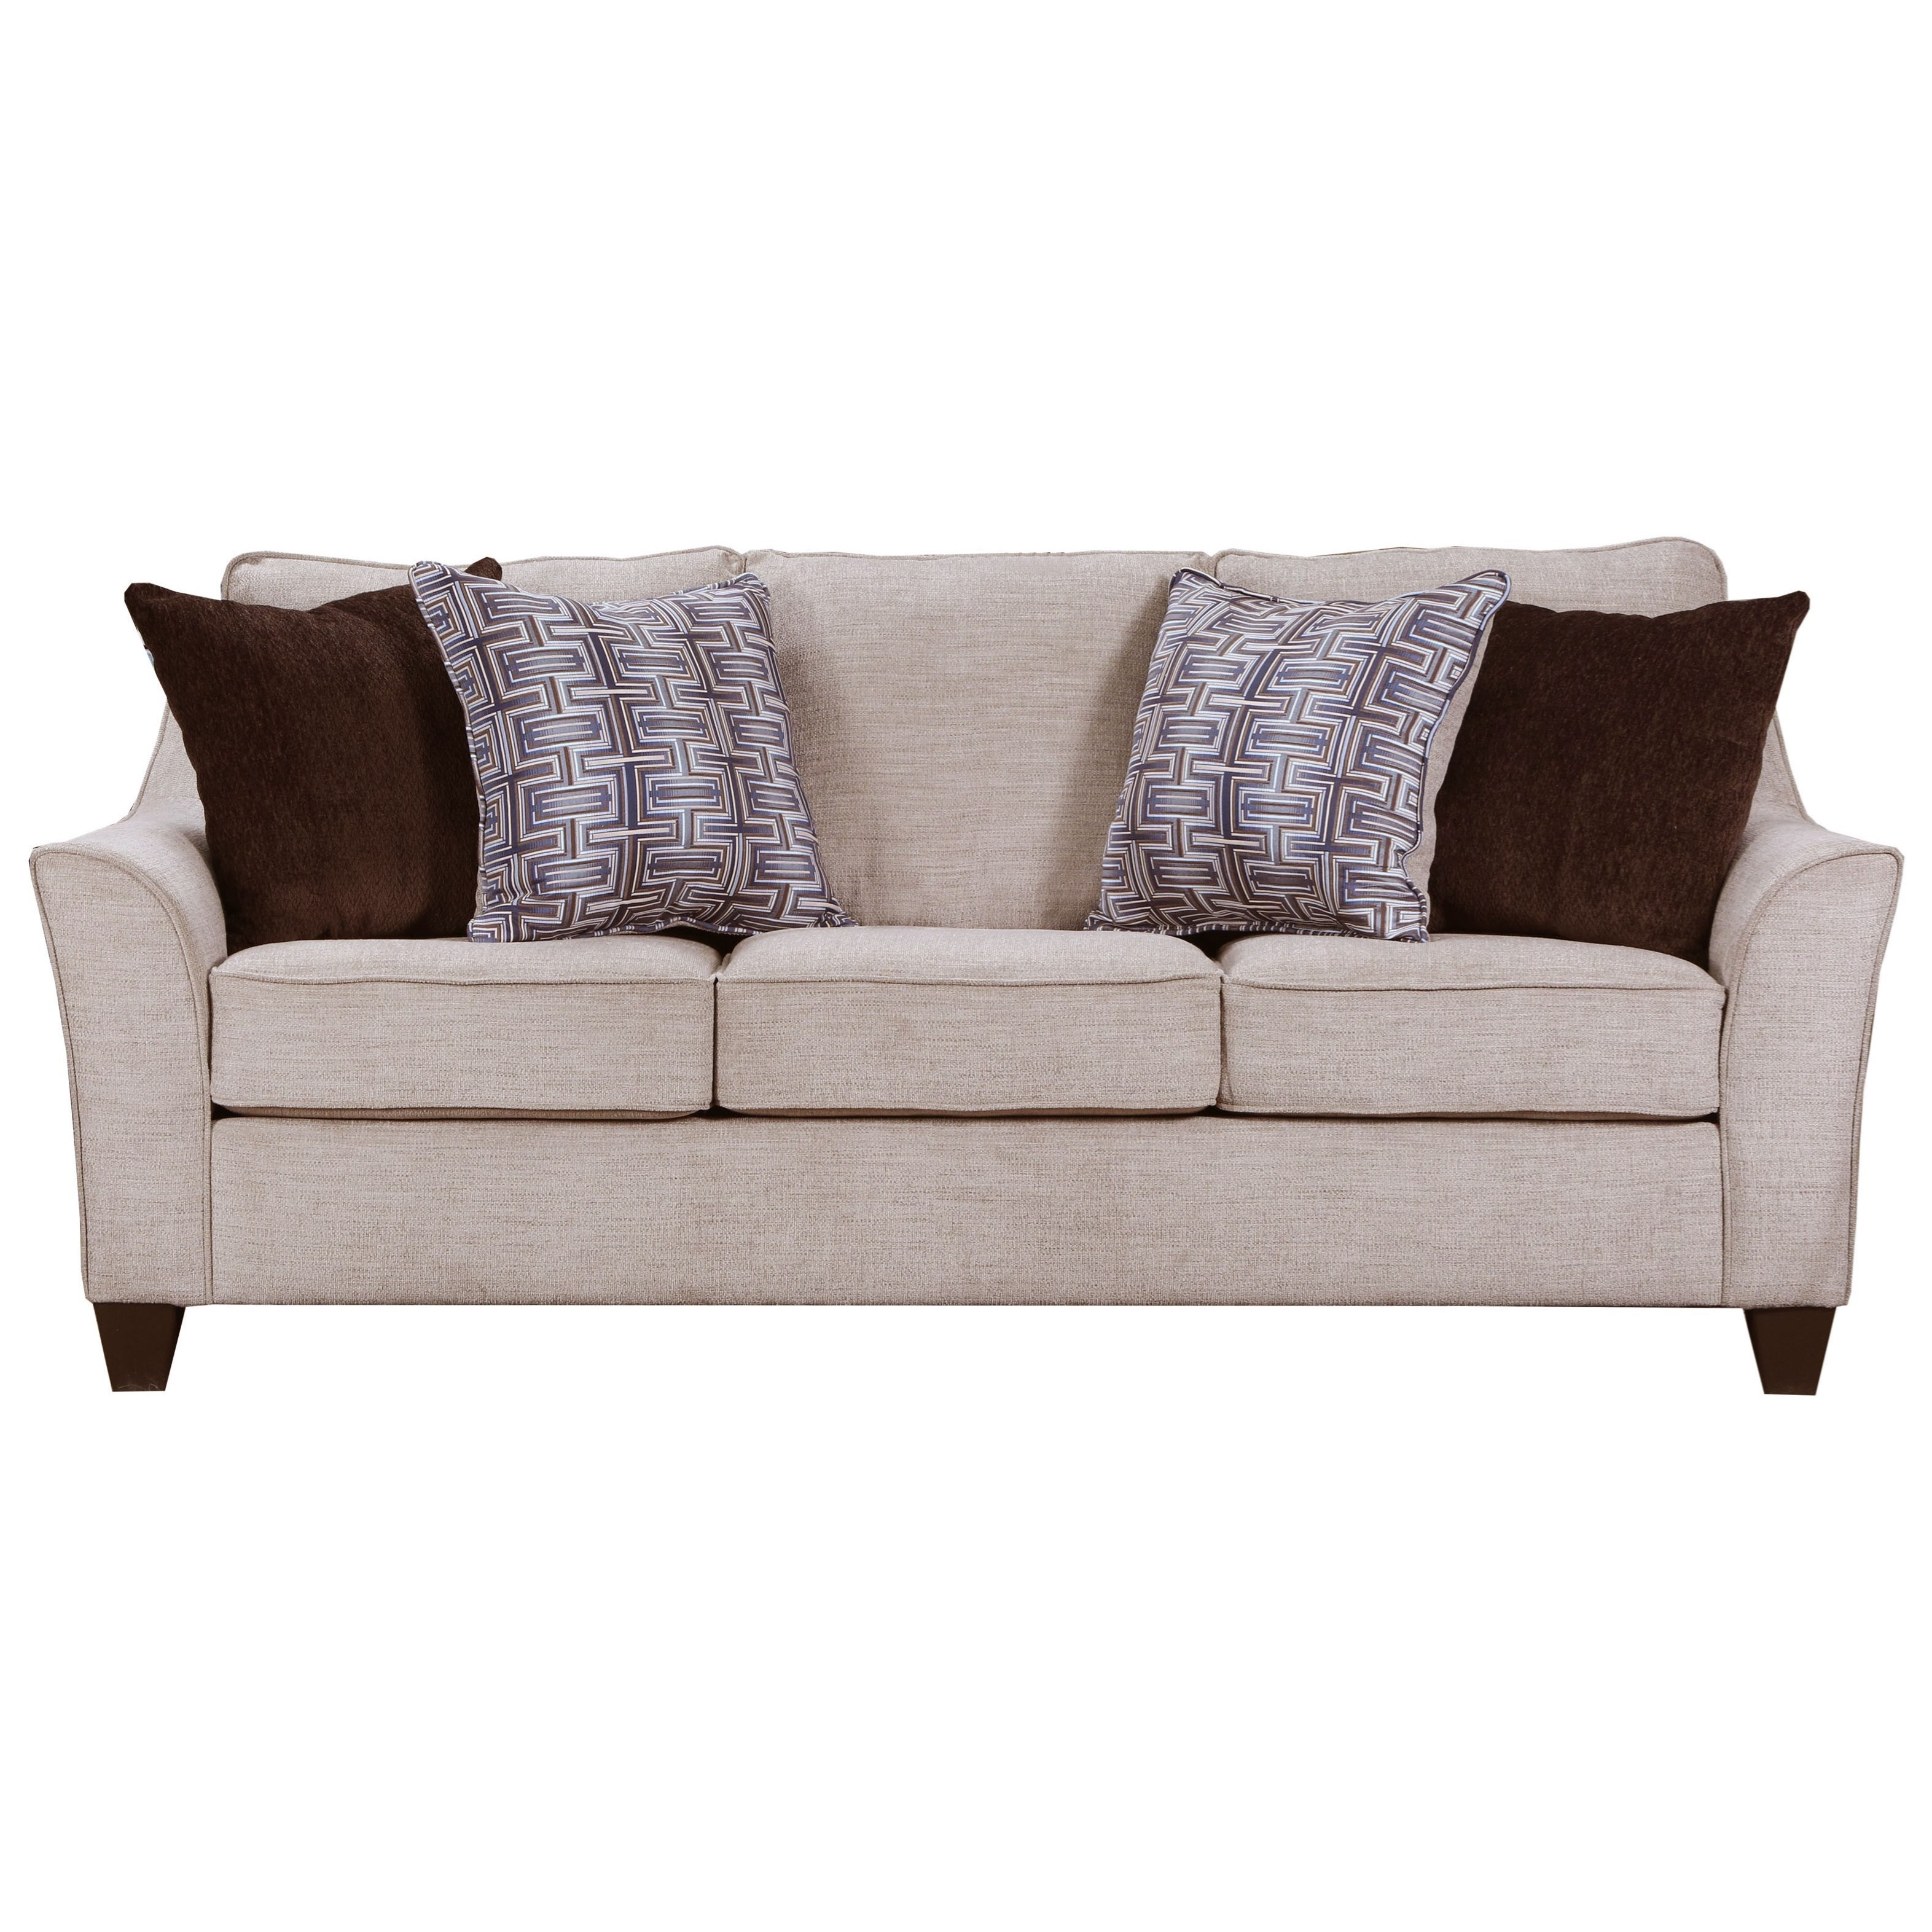 4330 Sofa by United Furniture Industries at Dream Home Interiors